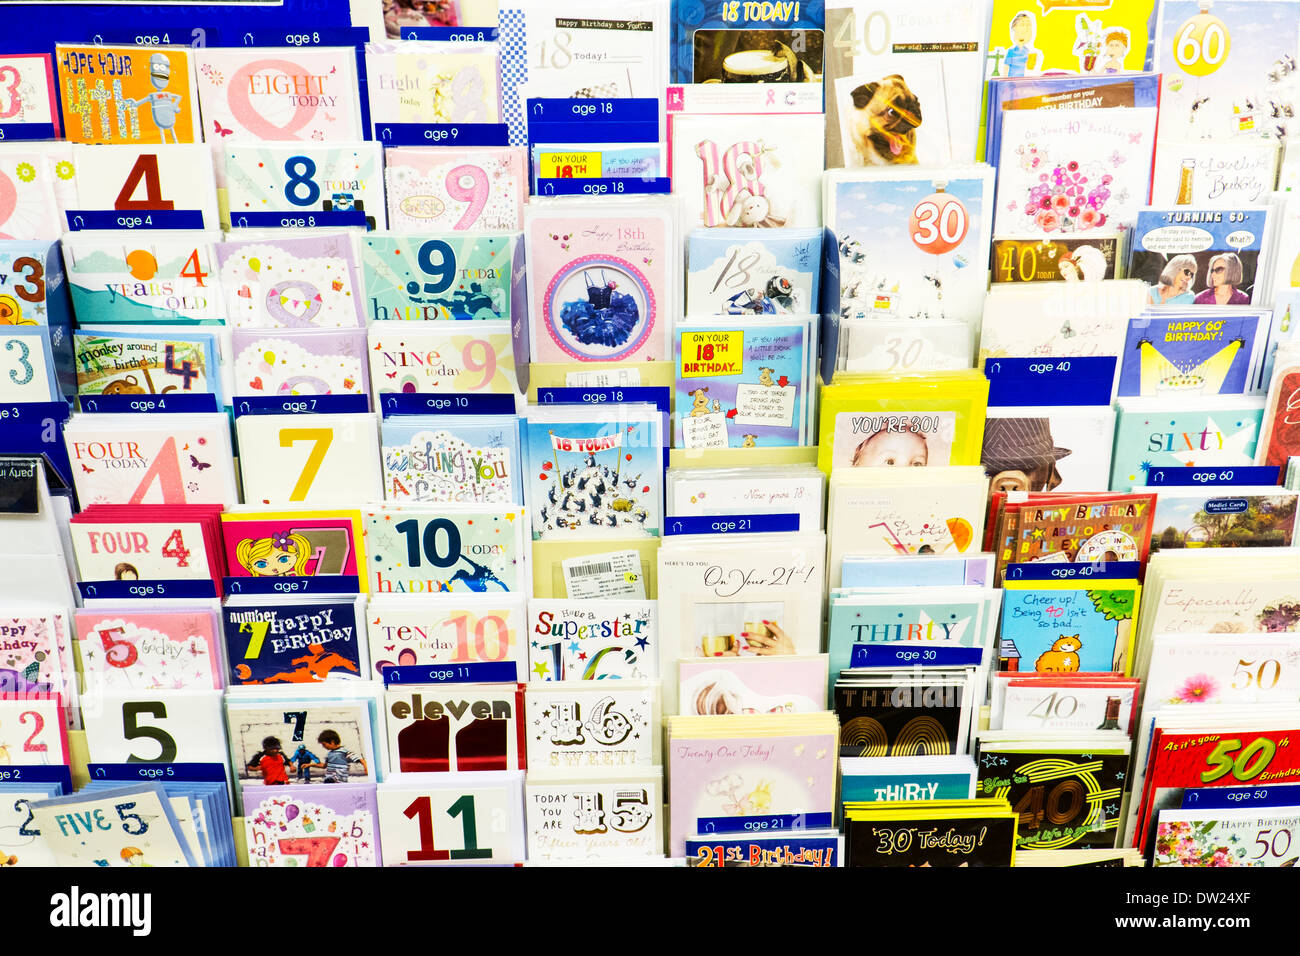 Birthday cards greetings card shop display ages age on card - Stock Image